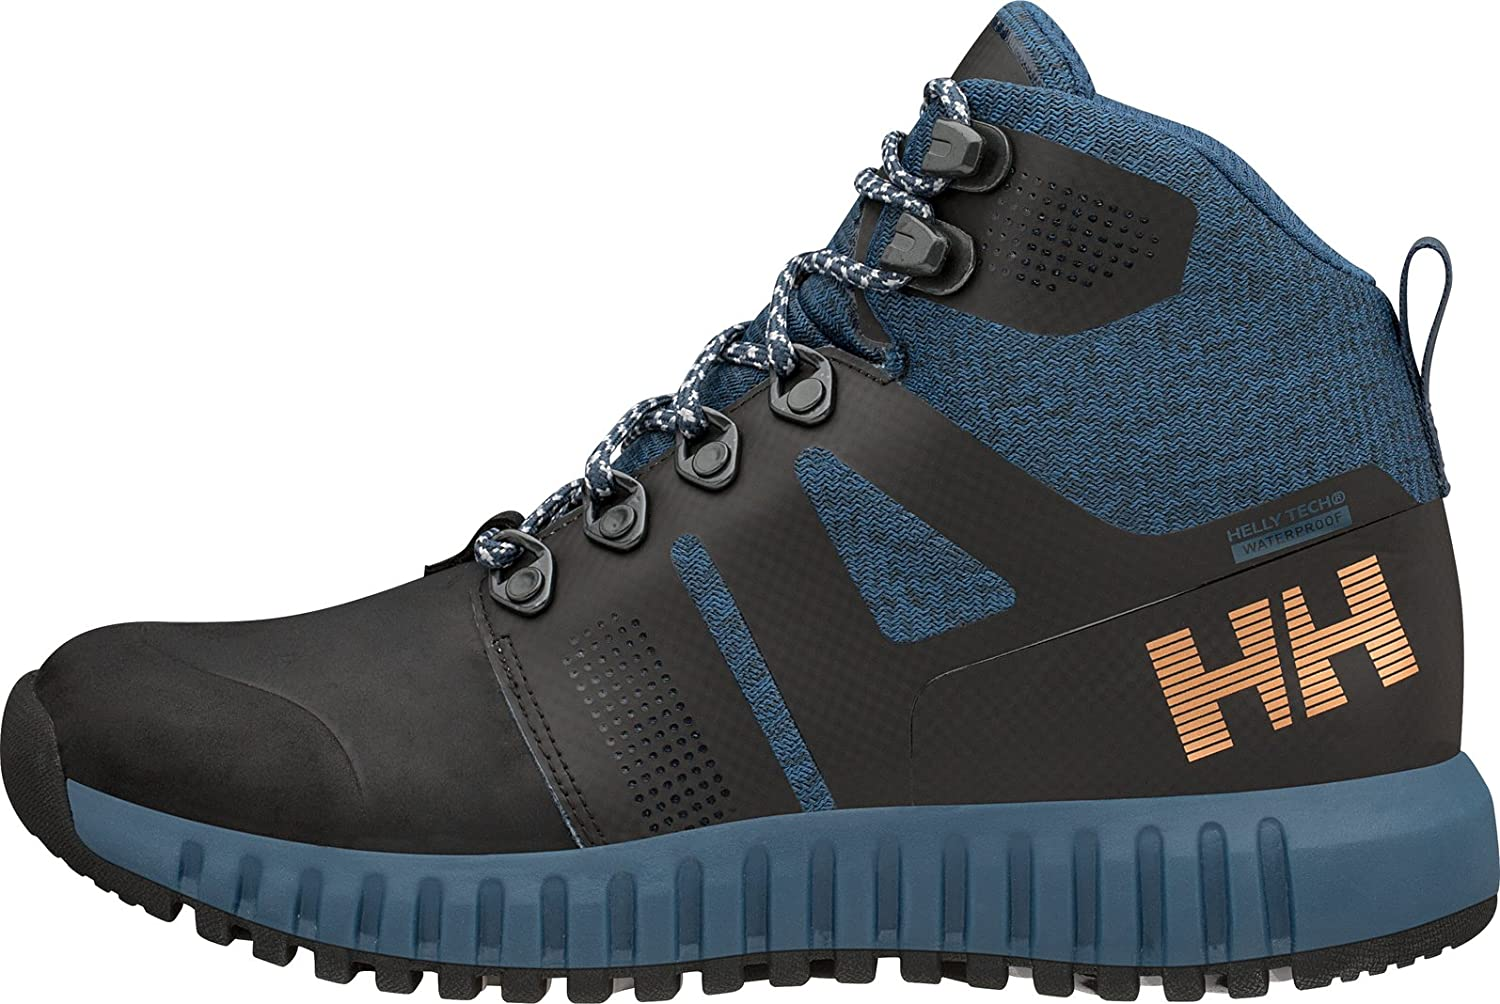 Helly Hansen Women's W Vanir Gallivant Ht High Rise Hiking Boots Black Black Black Silver Gre 992